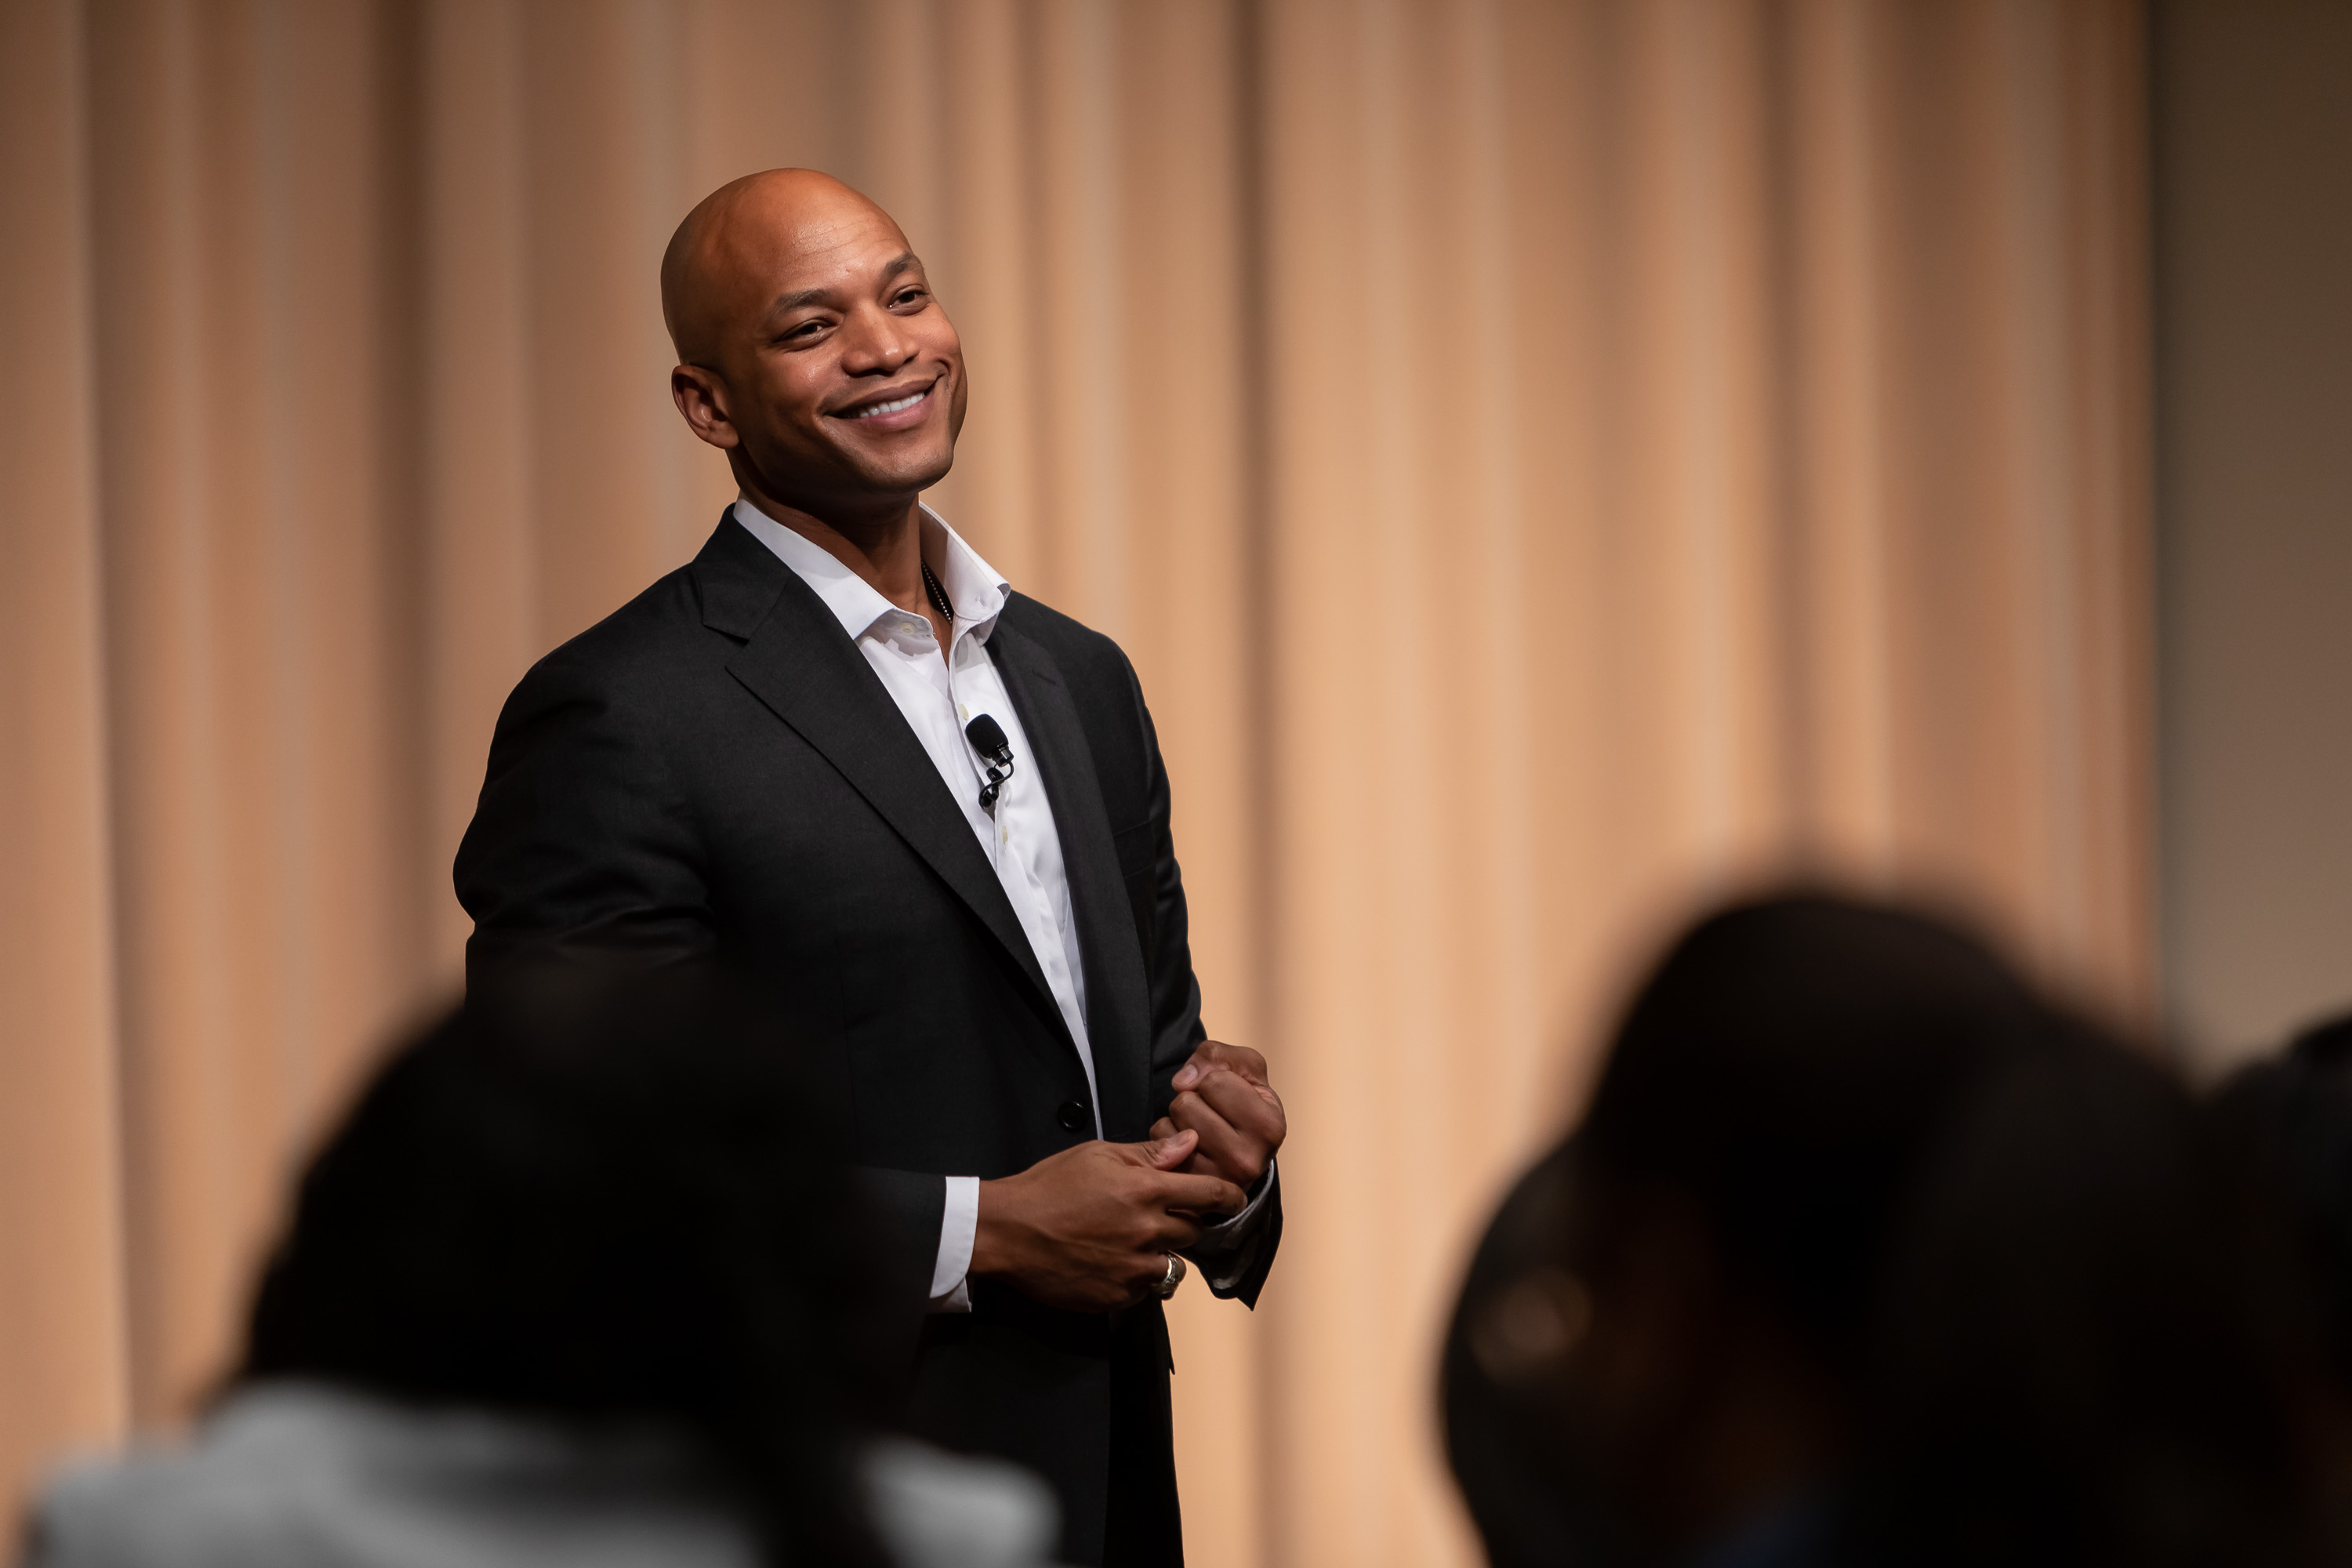 Wes Moore, best-selling author, Army veteran, social entrepreneur and CEO of Robin Hood, one of the largest anti-poverty organizations in the country, delivers his keynote address. (DePaul University/Jeff Carrion)